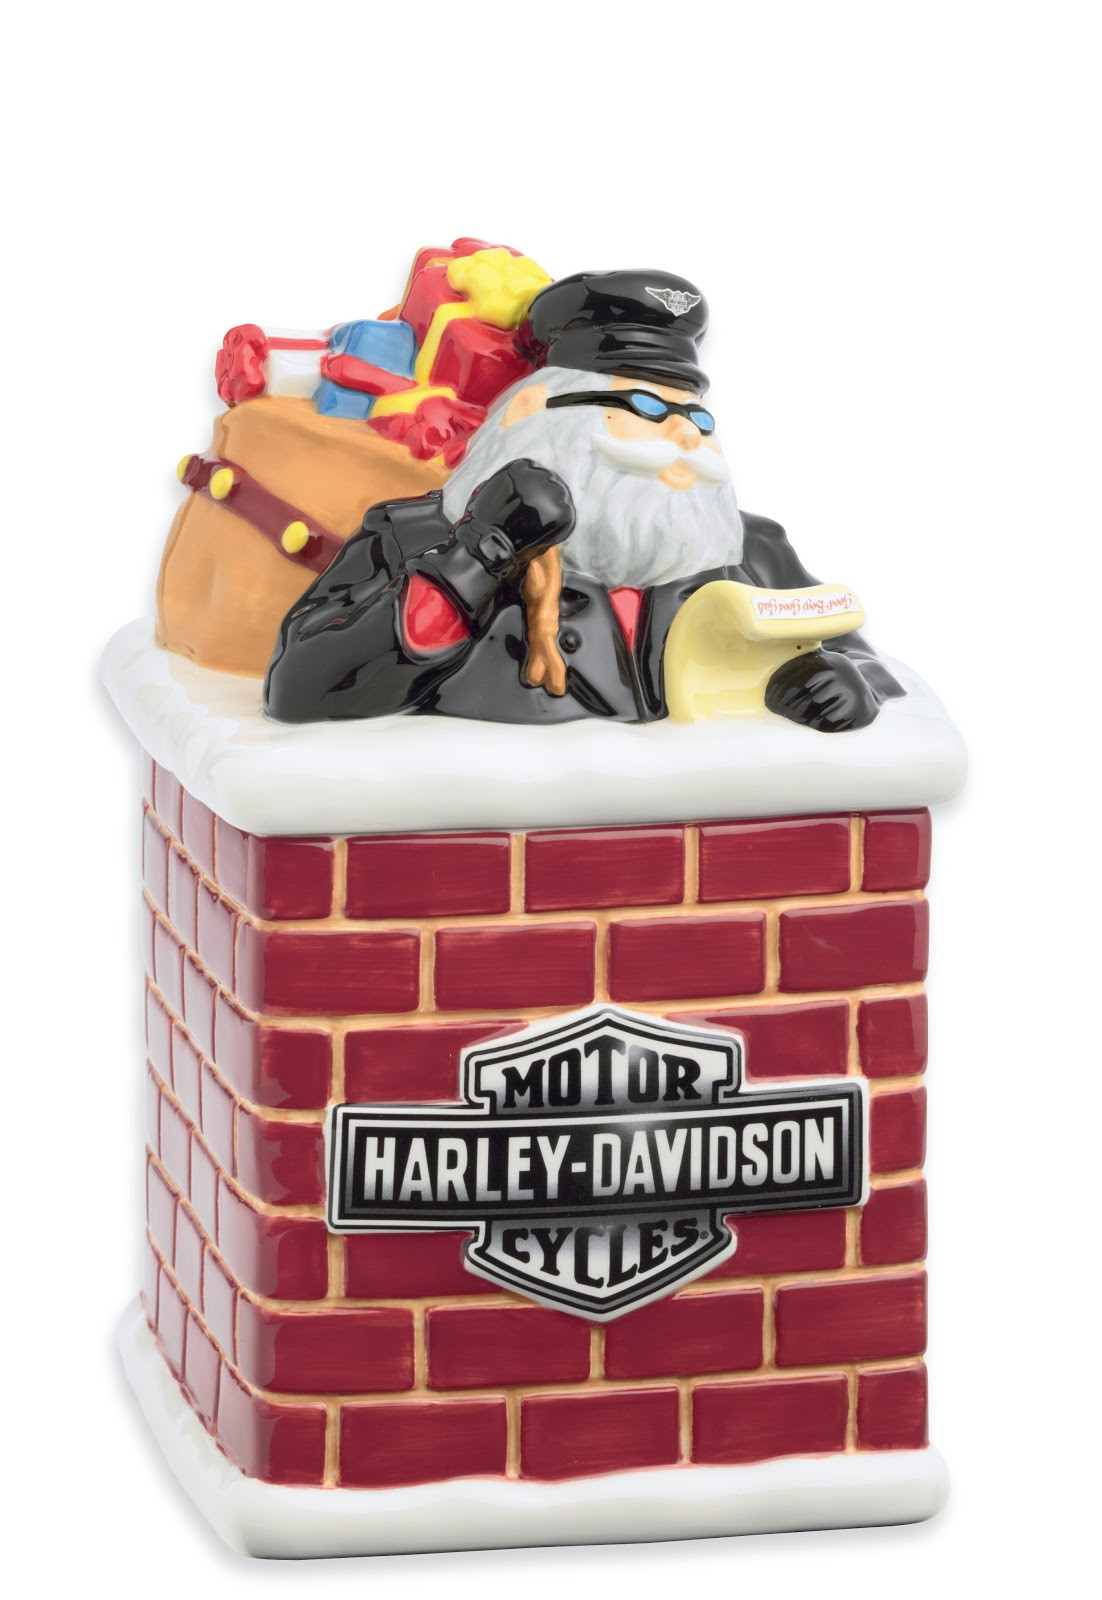 Best ideas about Harley Davidson Gift Ideas . Save or Pin Liberty Harley Davidson Gift Ideas Part 2 For that Now.